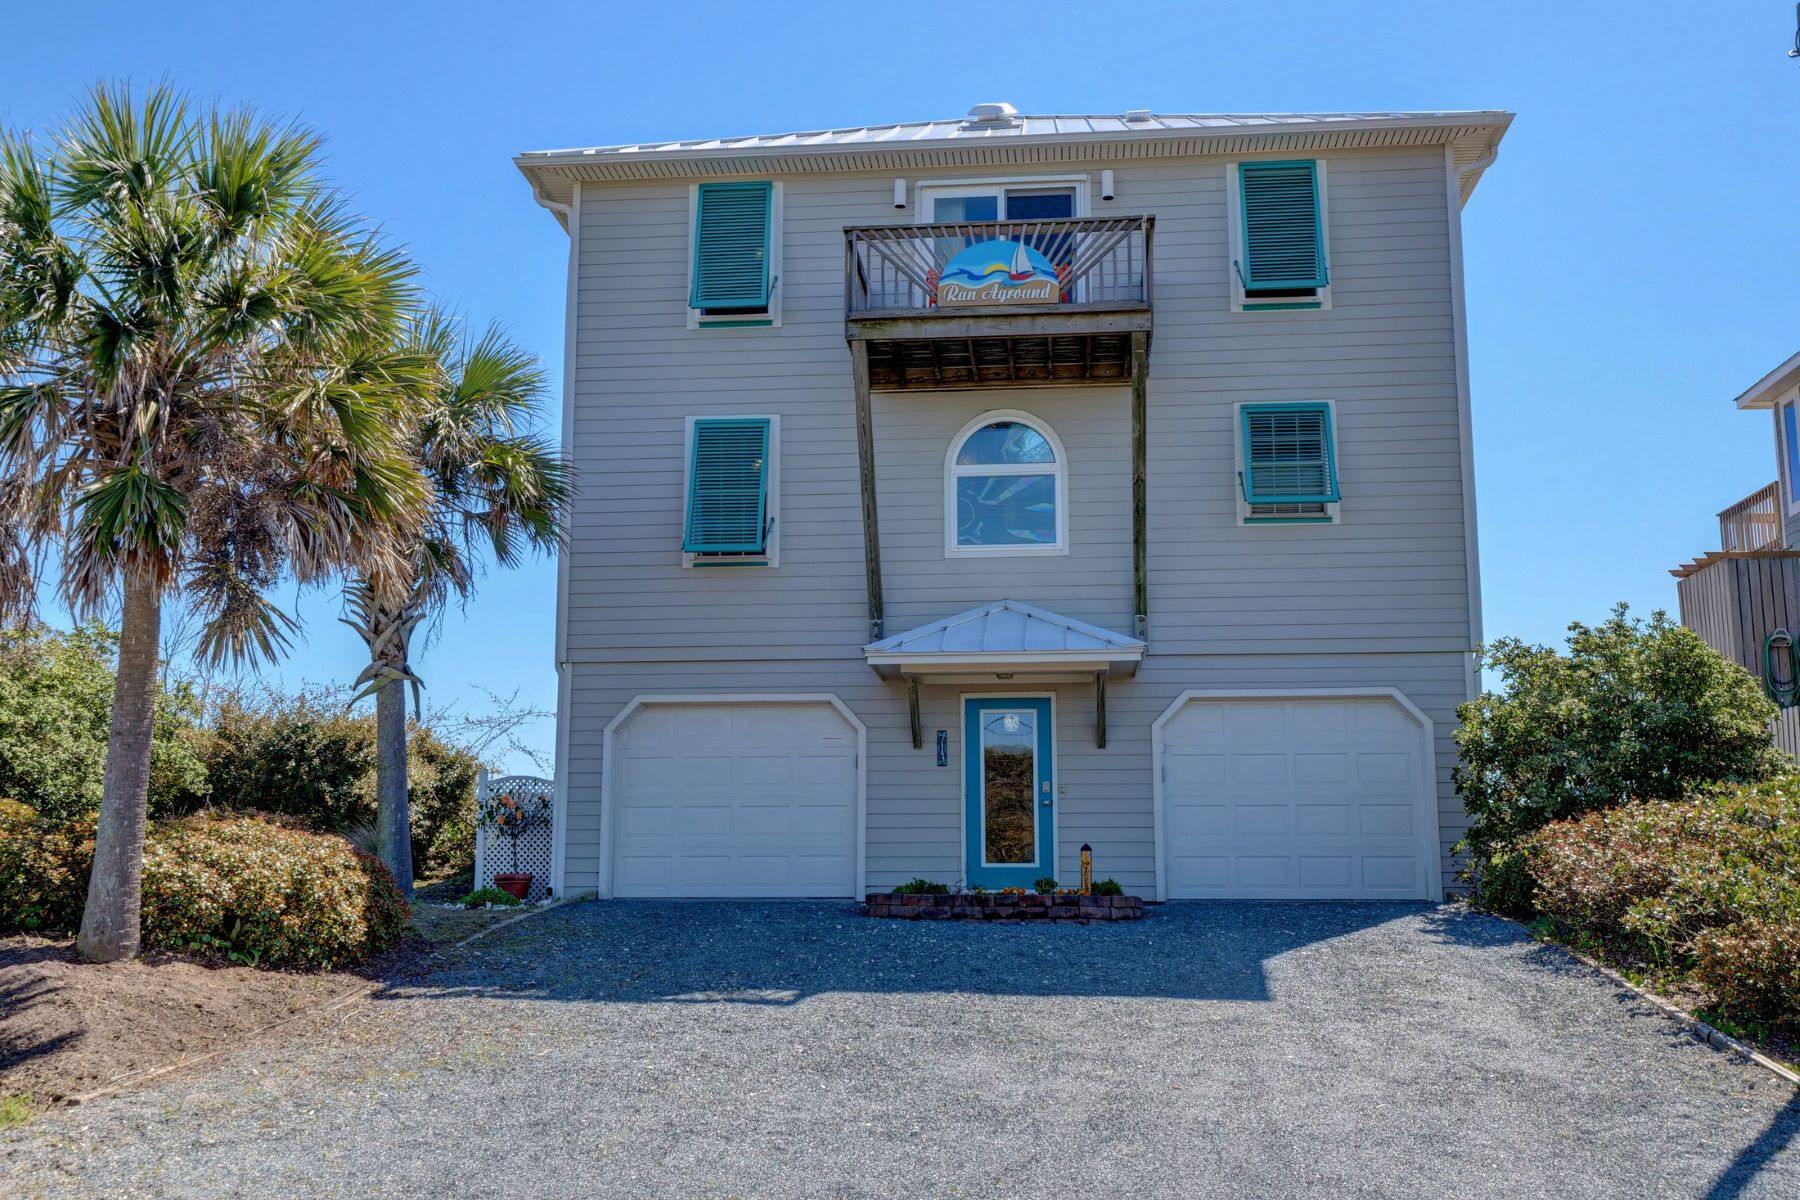 Single Family Homes for Sale at Topsail Oceanfront Home 713 N Anderson Blvd Topsail Beach, North Carolina 28445 United States